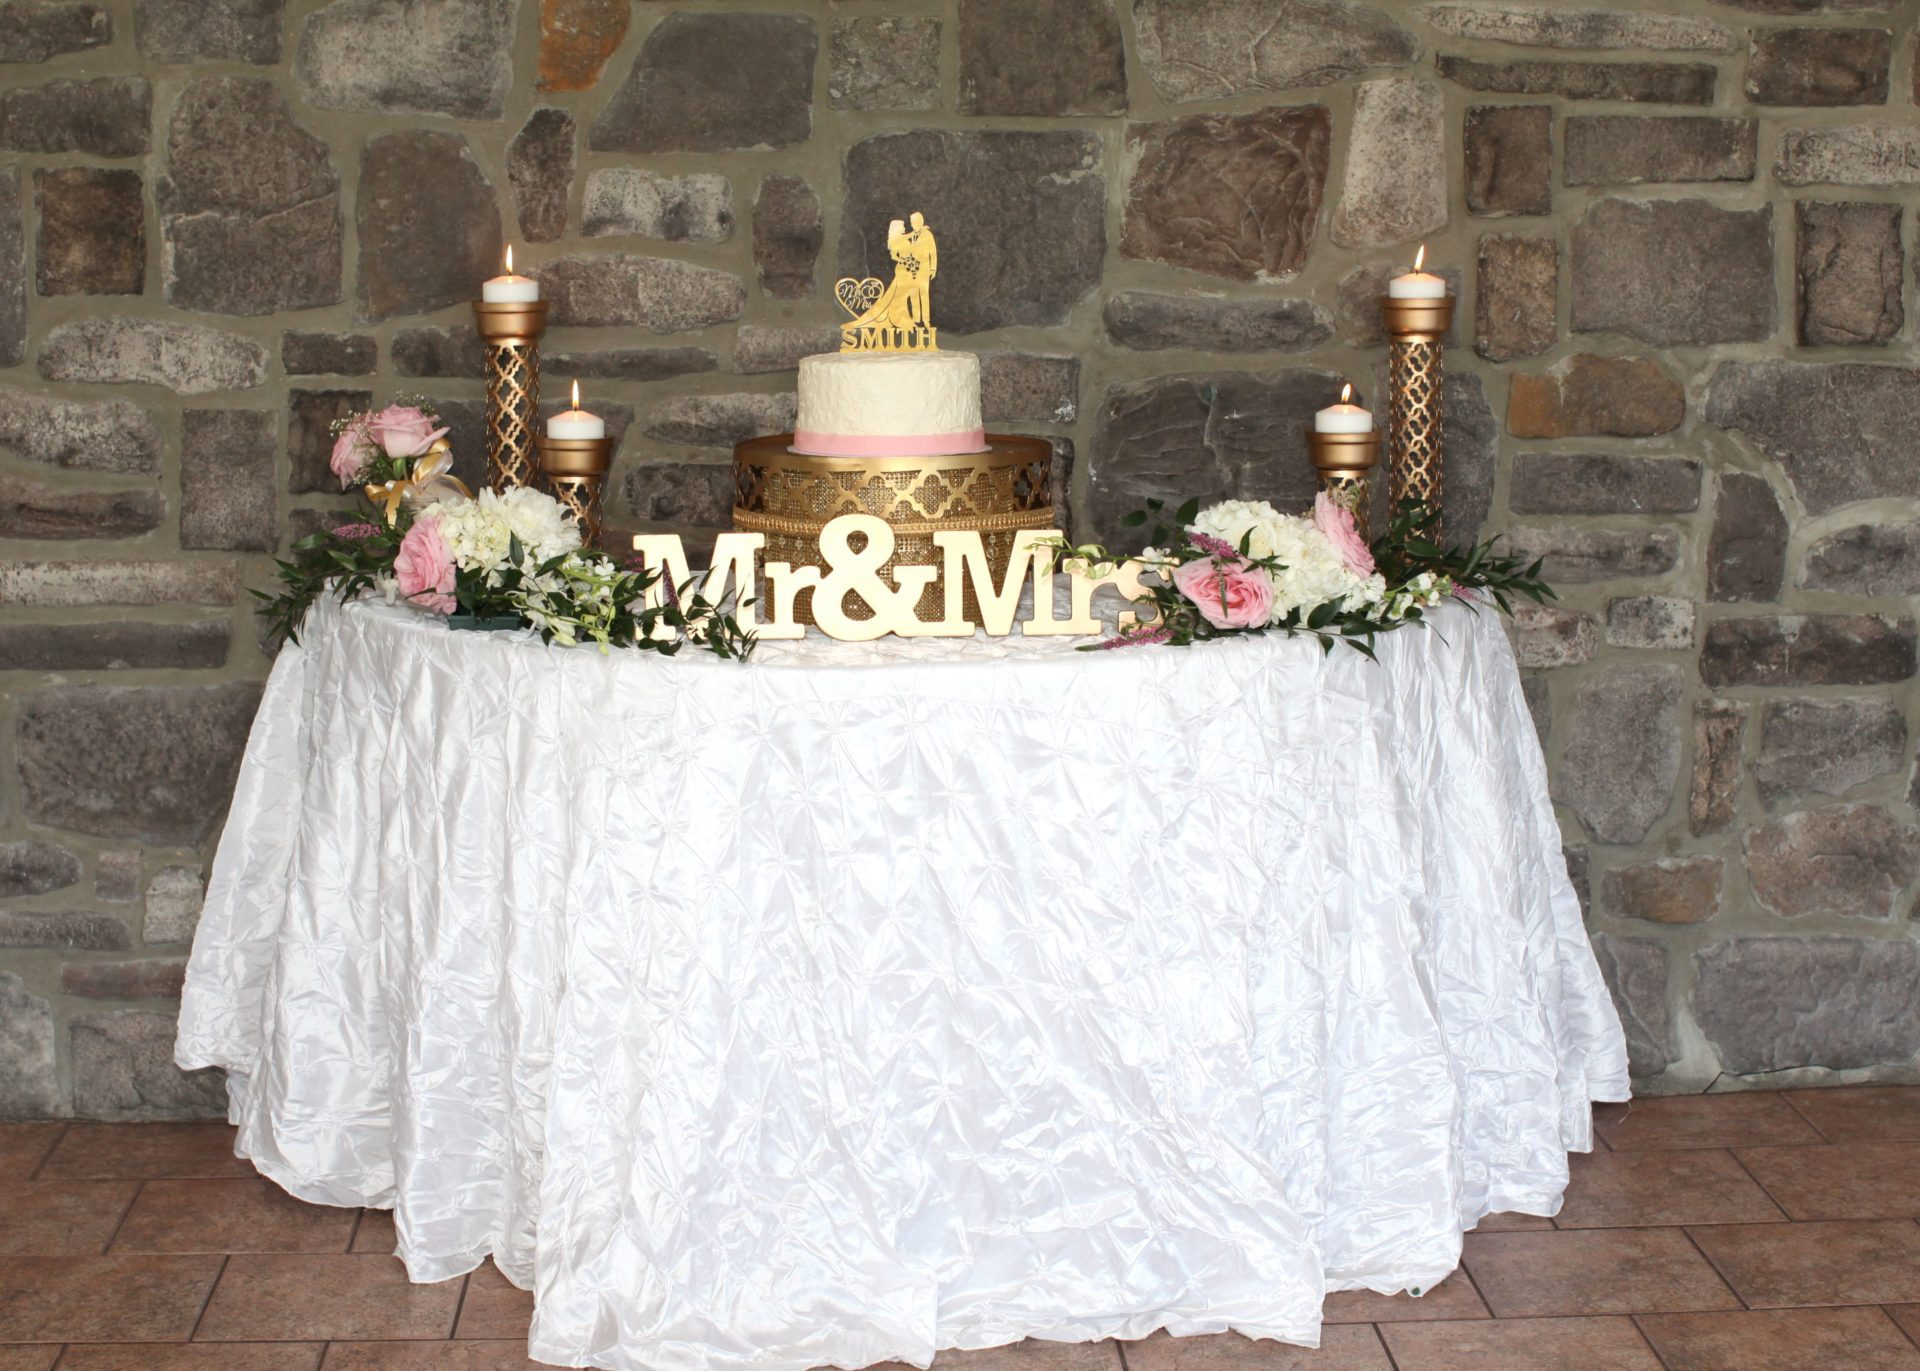 Cake table for tea party themed wedding